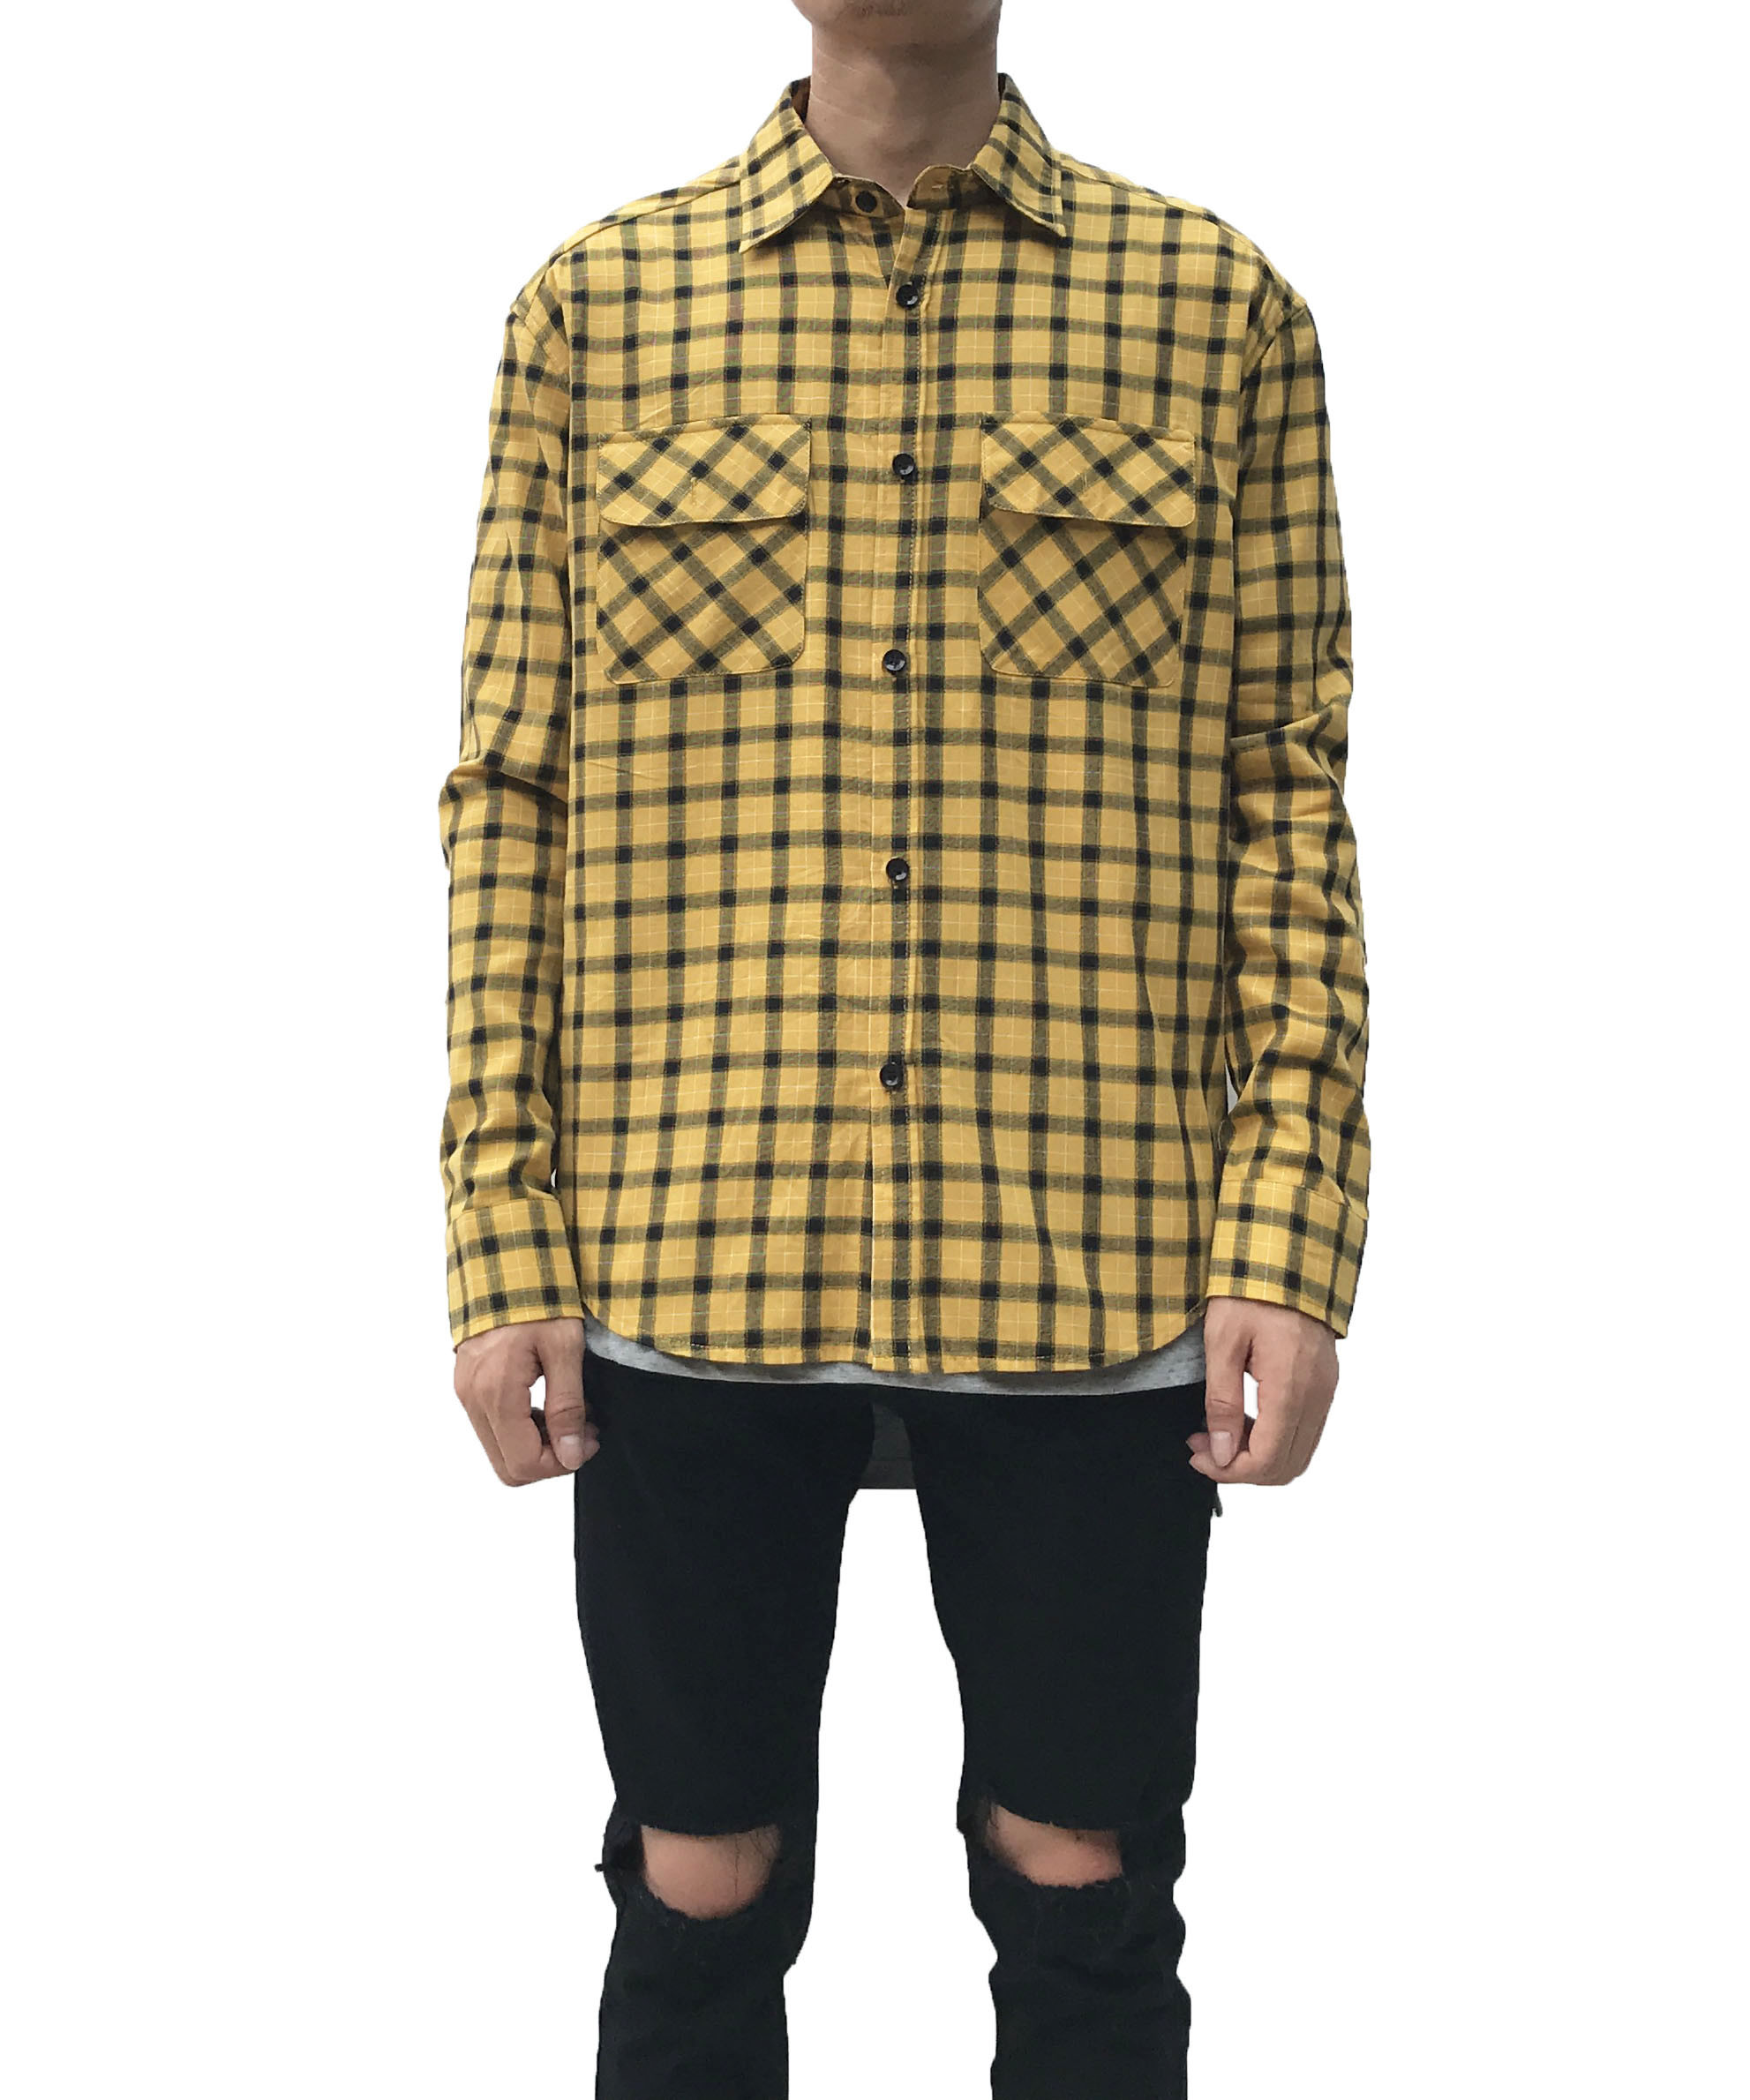 Long Sleeve Flannel Shirt - Yellow